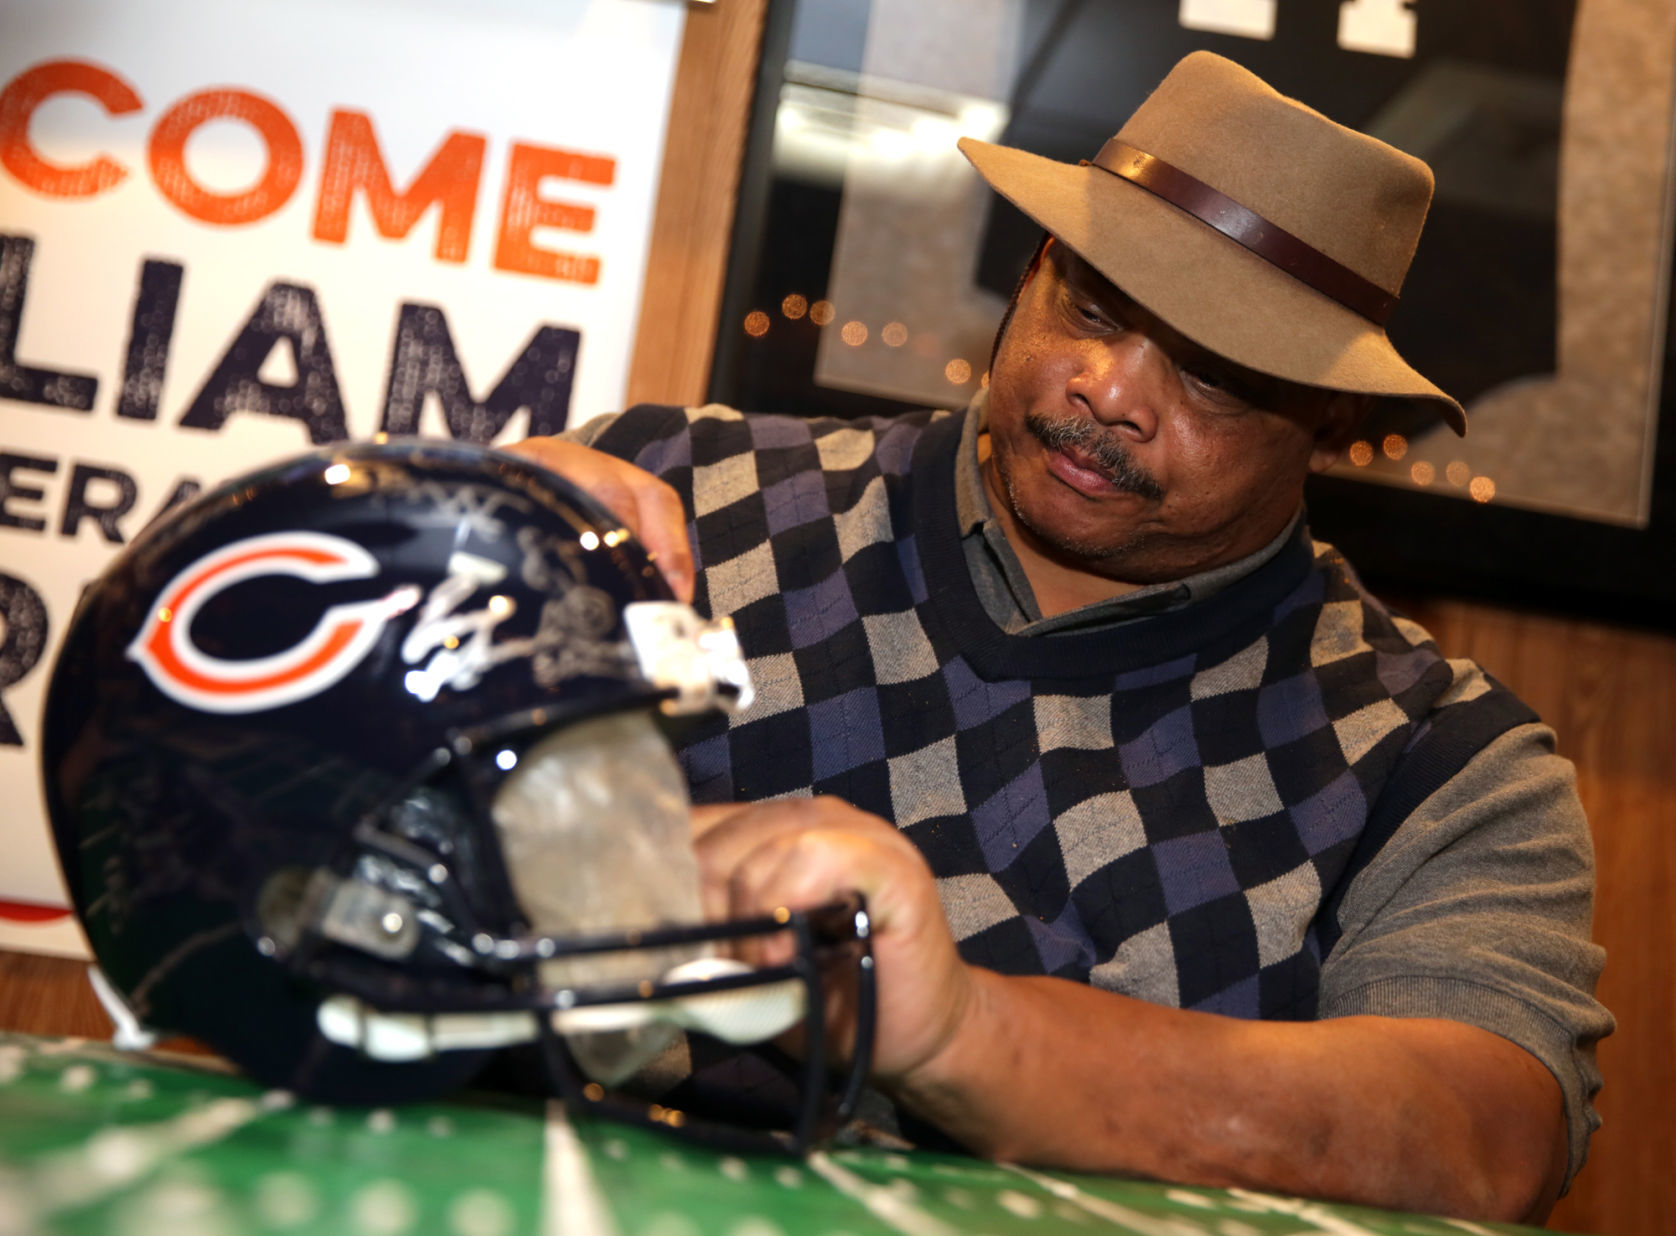 https://www.nwitimes.com/william-the-refrigerator-perry-to-sign-autographs-at-bridge-s/article_b678c95f-ca74-530a-805f-299e5b195f6d.html